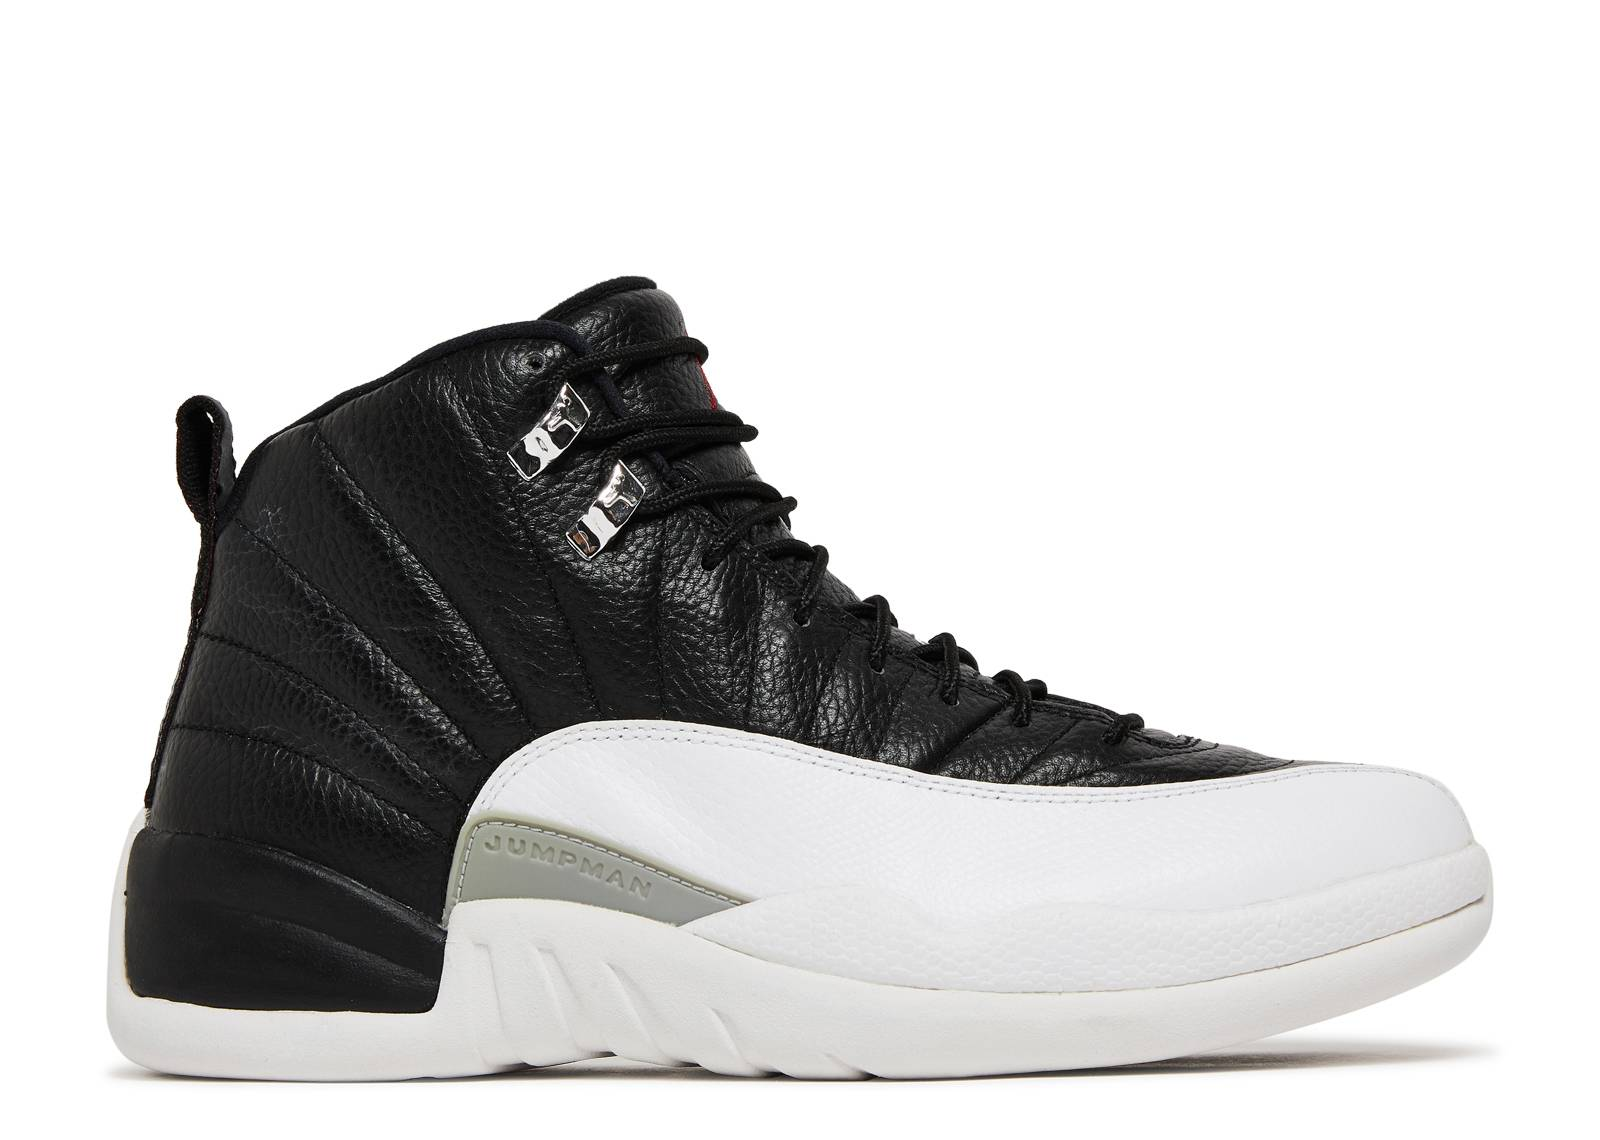 air-jordan-12-retro-playoff-2012-release-black-varsity-red-white-011564_1.jpg